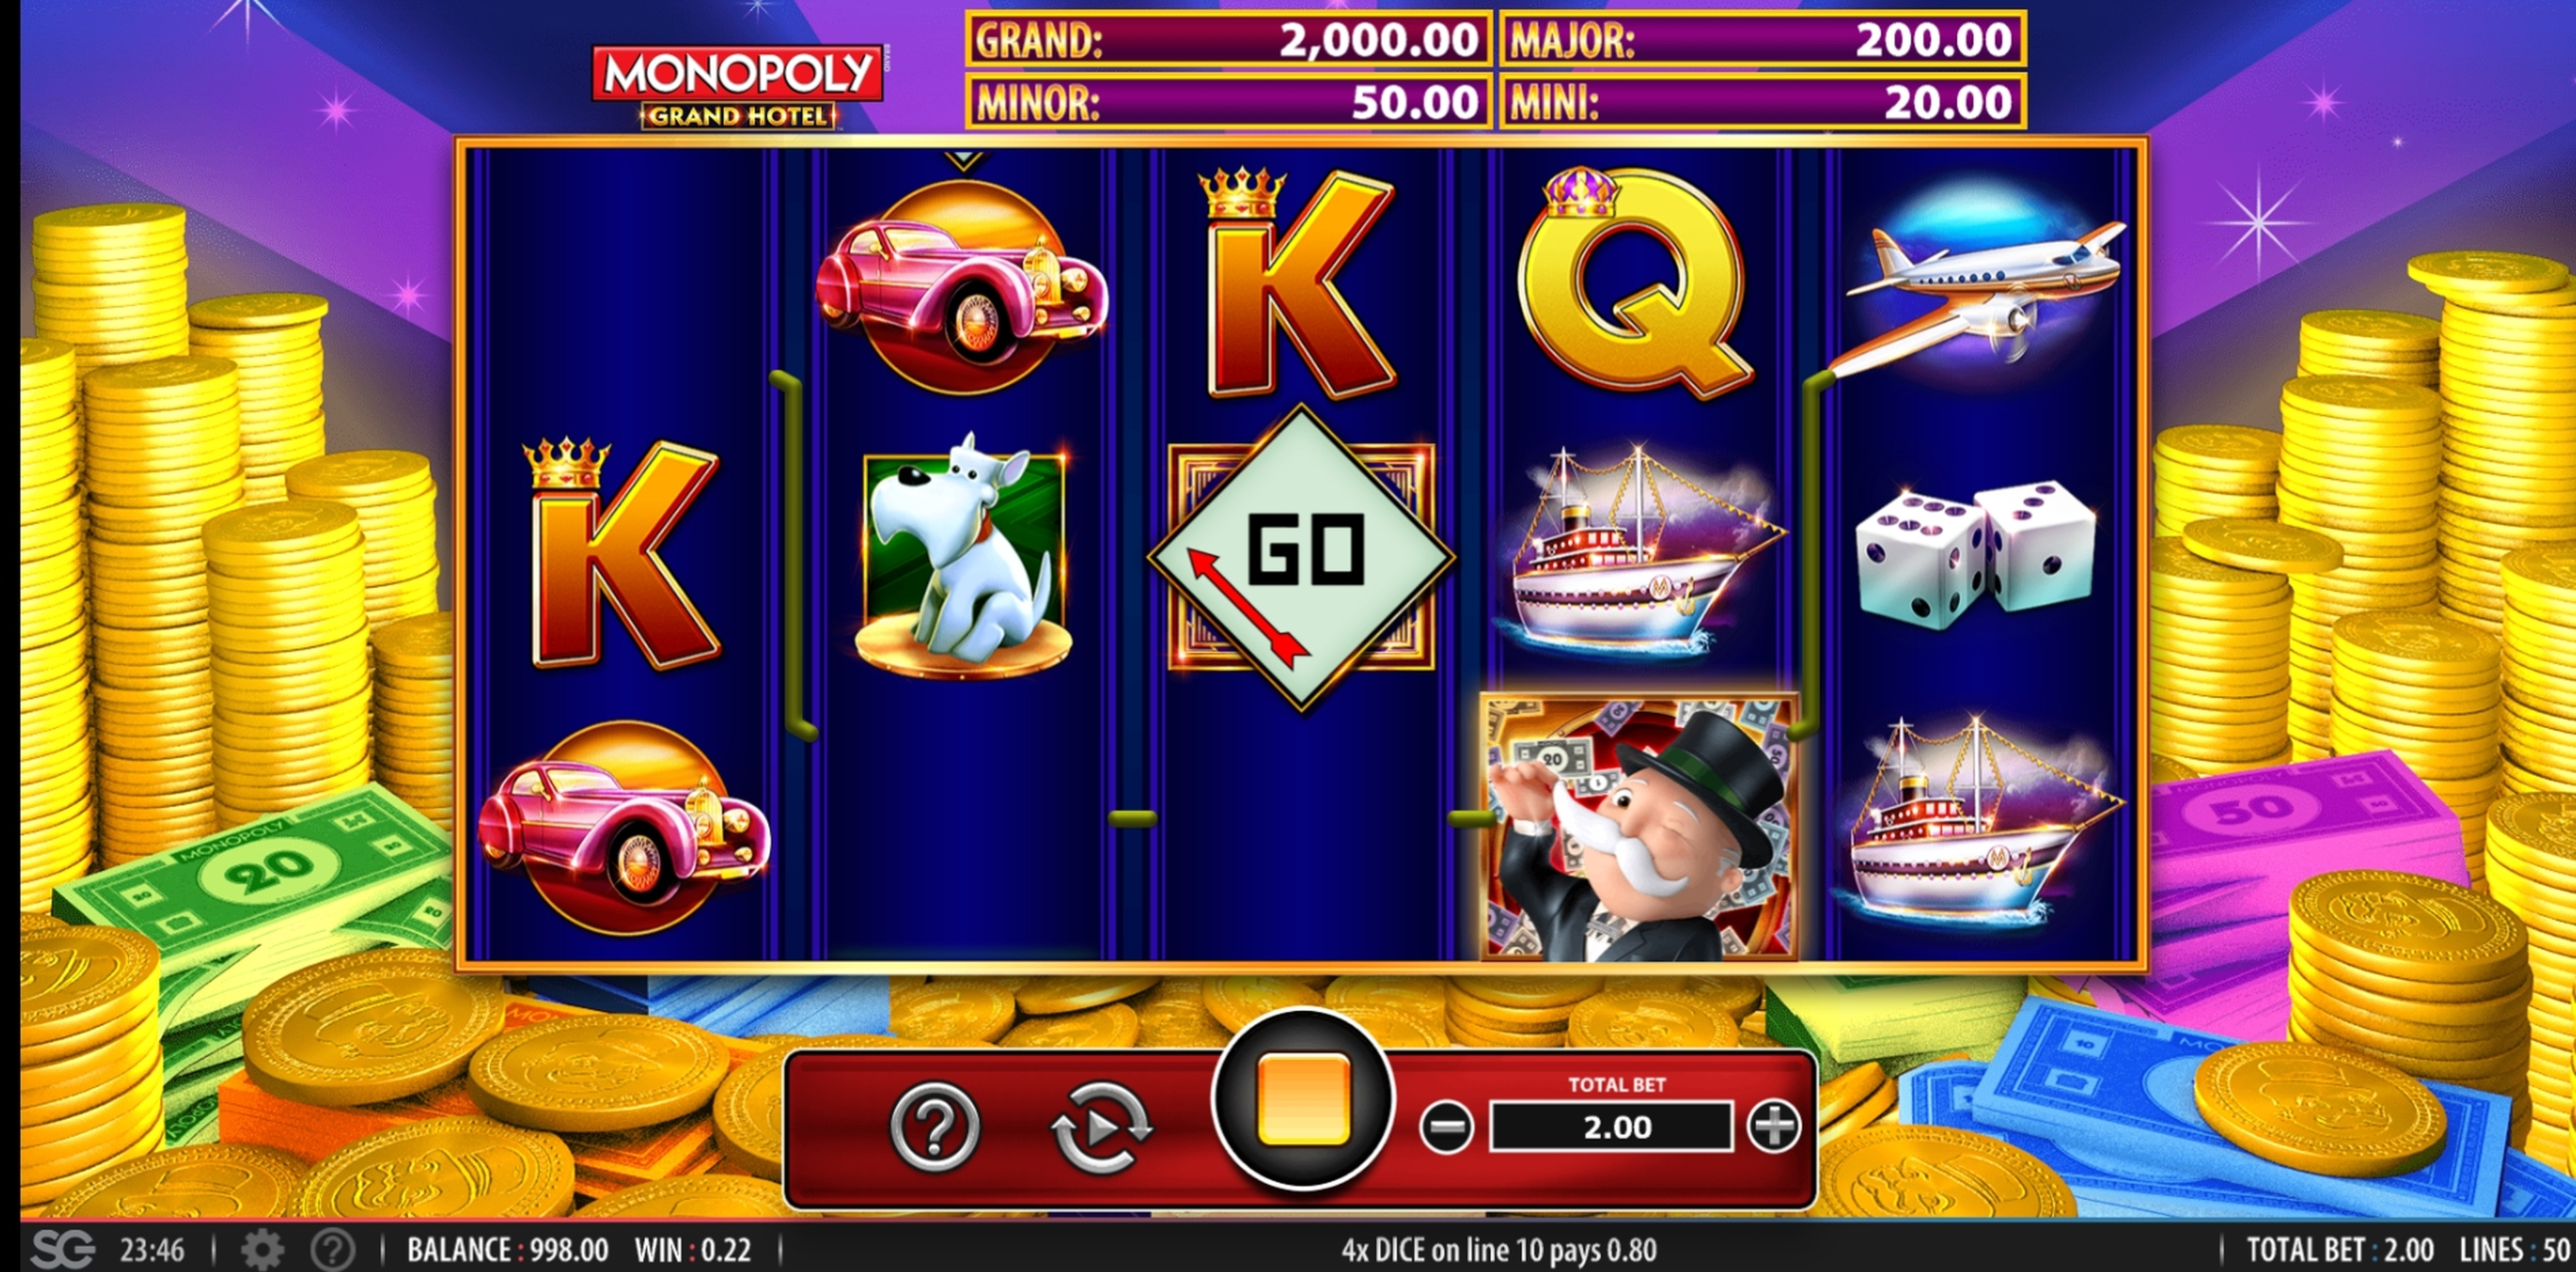 Win Money in Monopoly Grand Hotel Free Slot Game by WMS